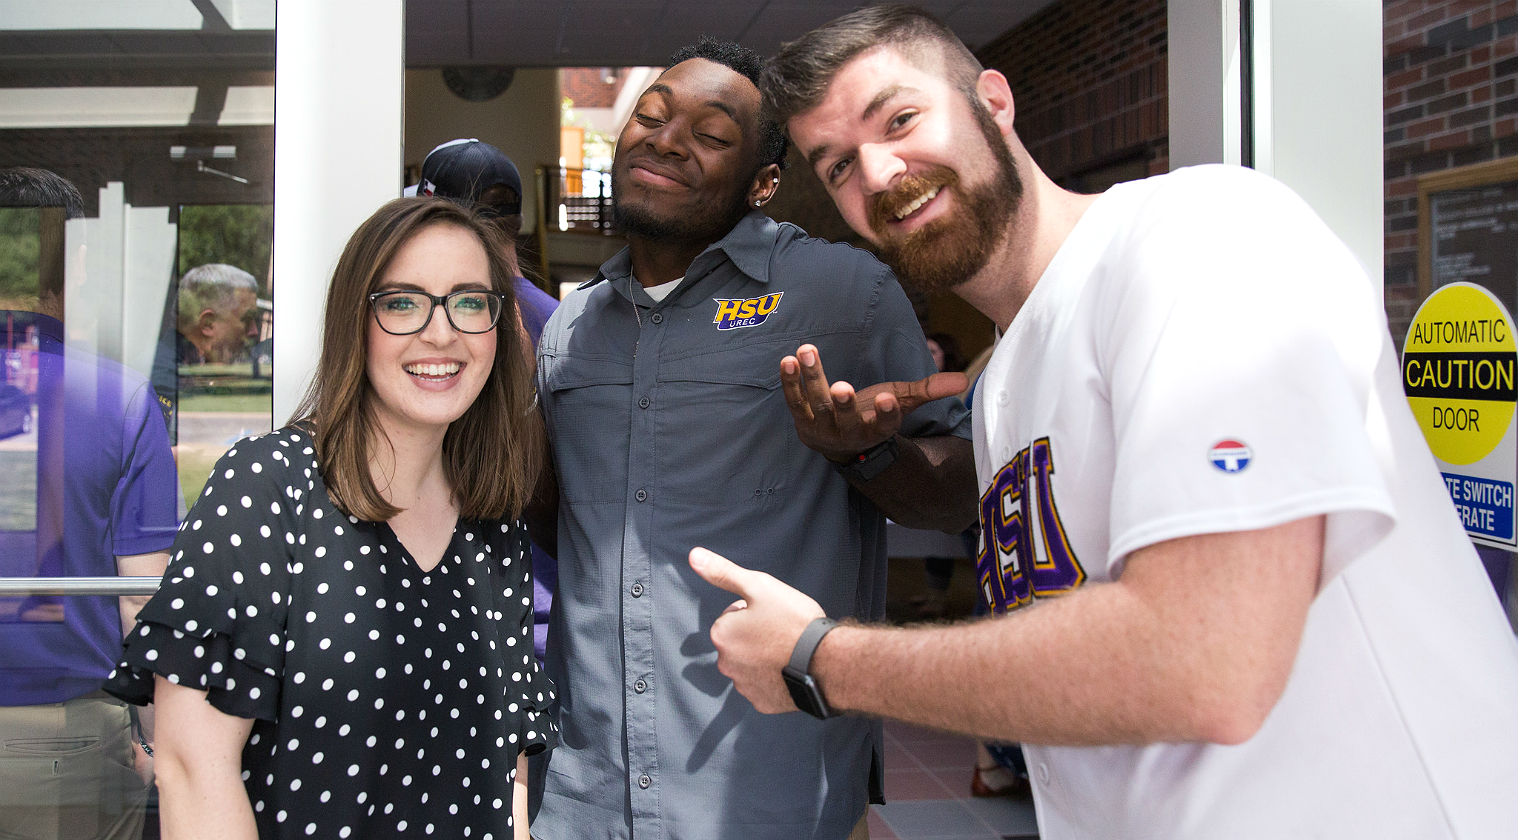 HSU students smiling in front of Student Services building